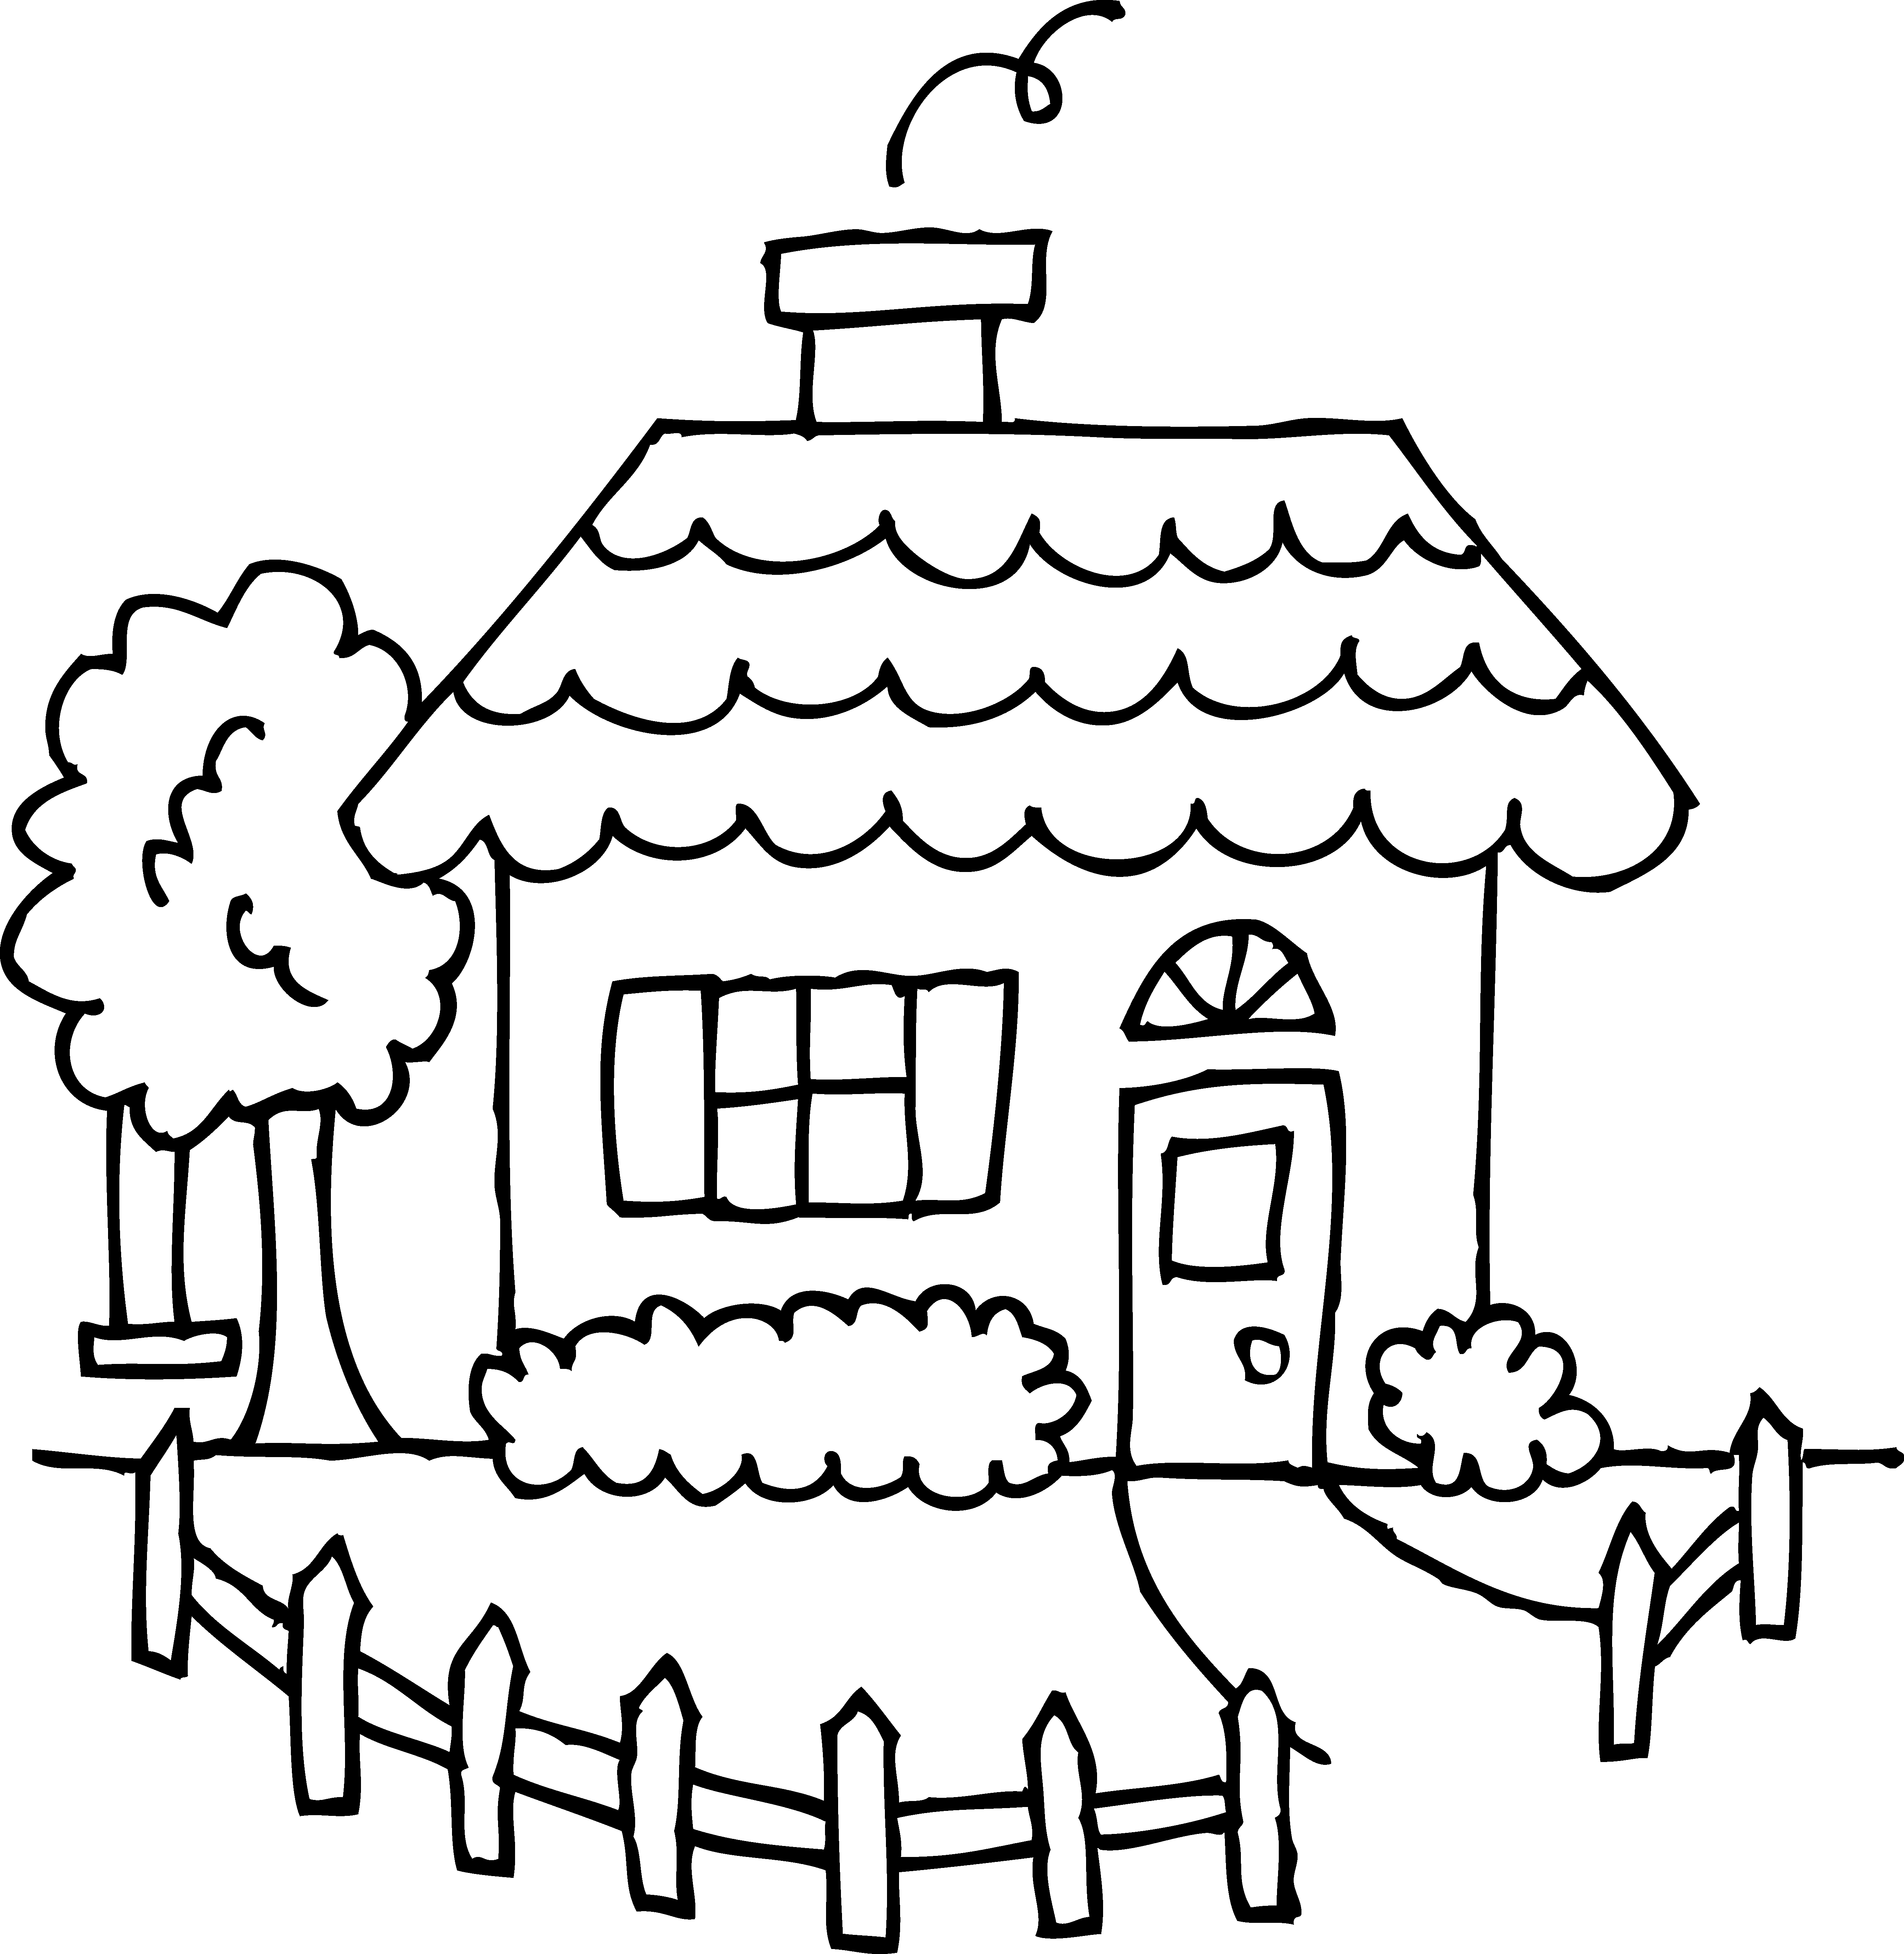 Free Images House Download Free Clip Art Free Clip Art